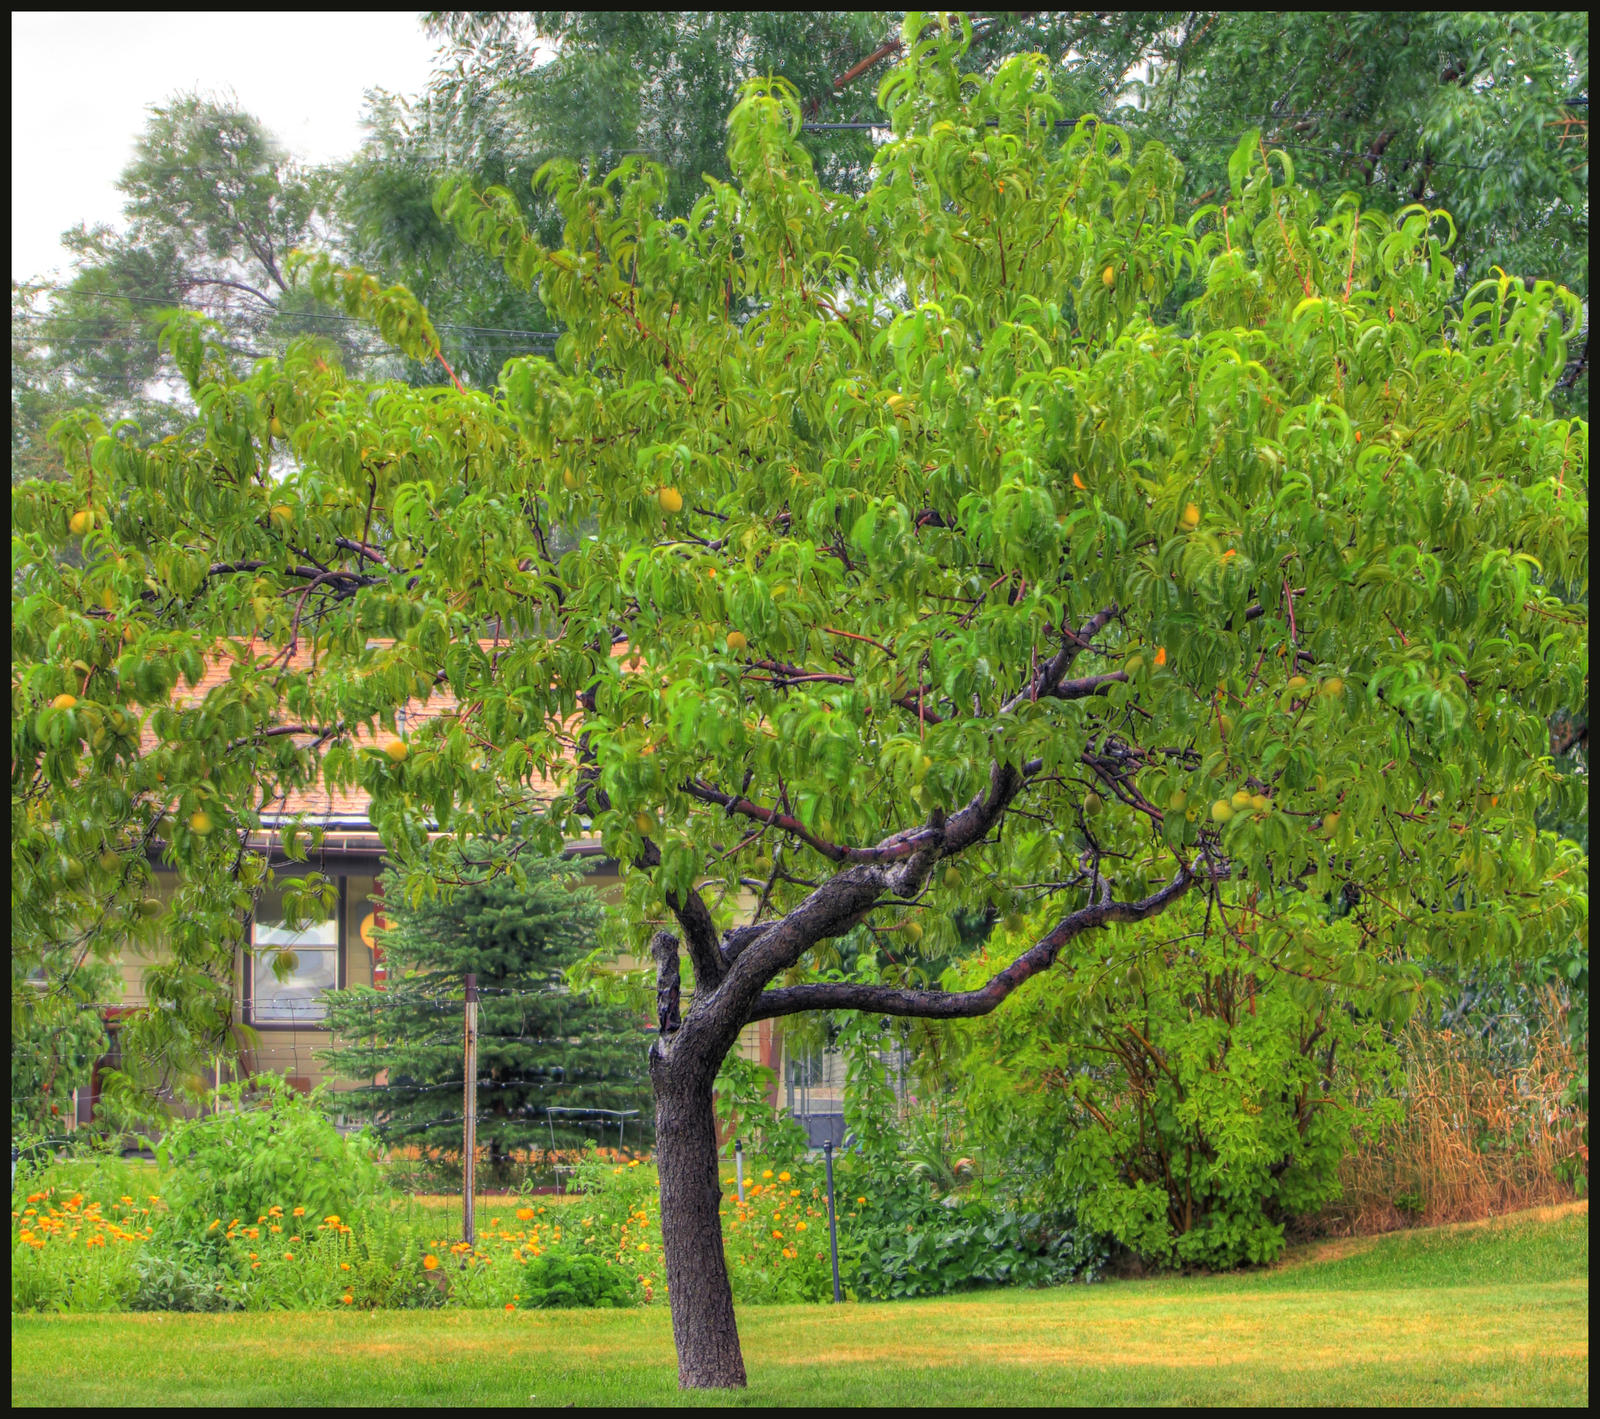 Thundestorm Peach Tree HDR by coby111 on DeviantArt